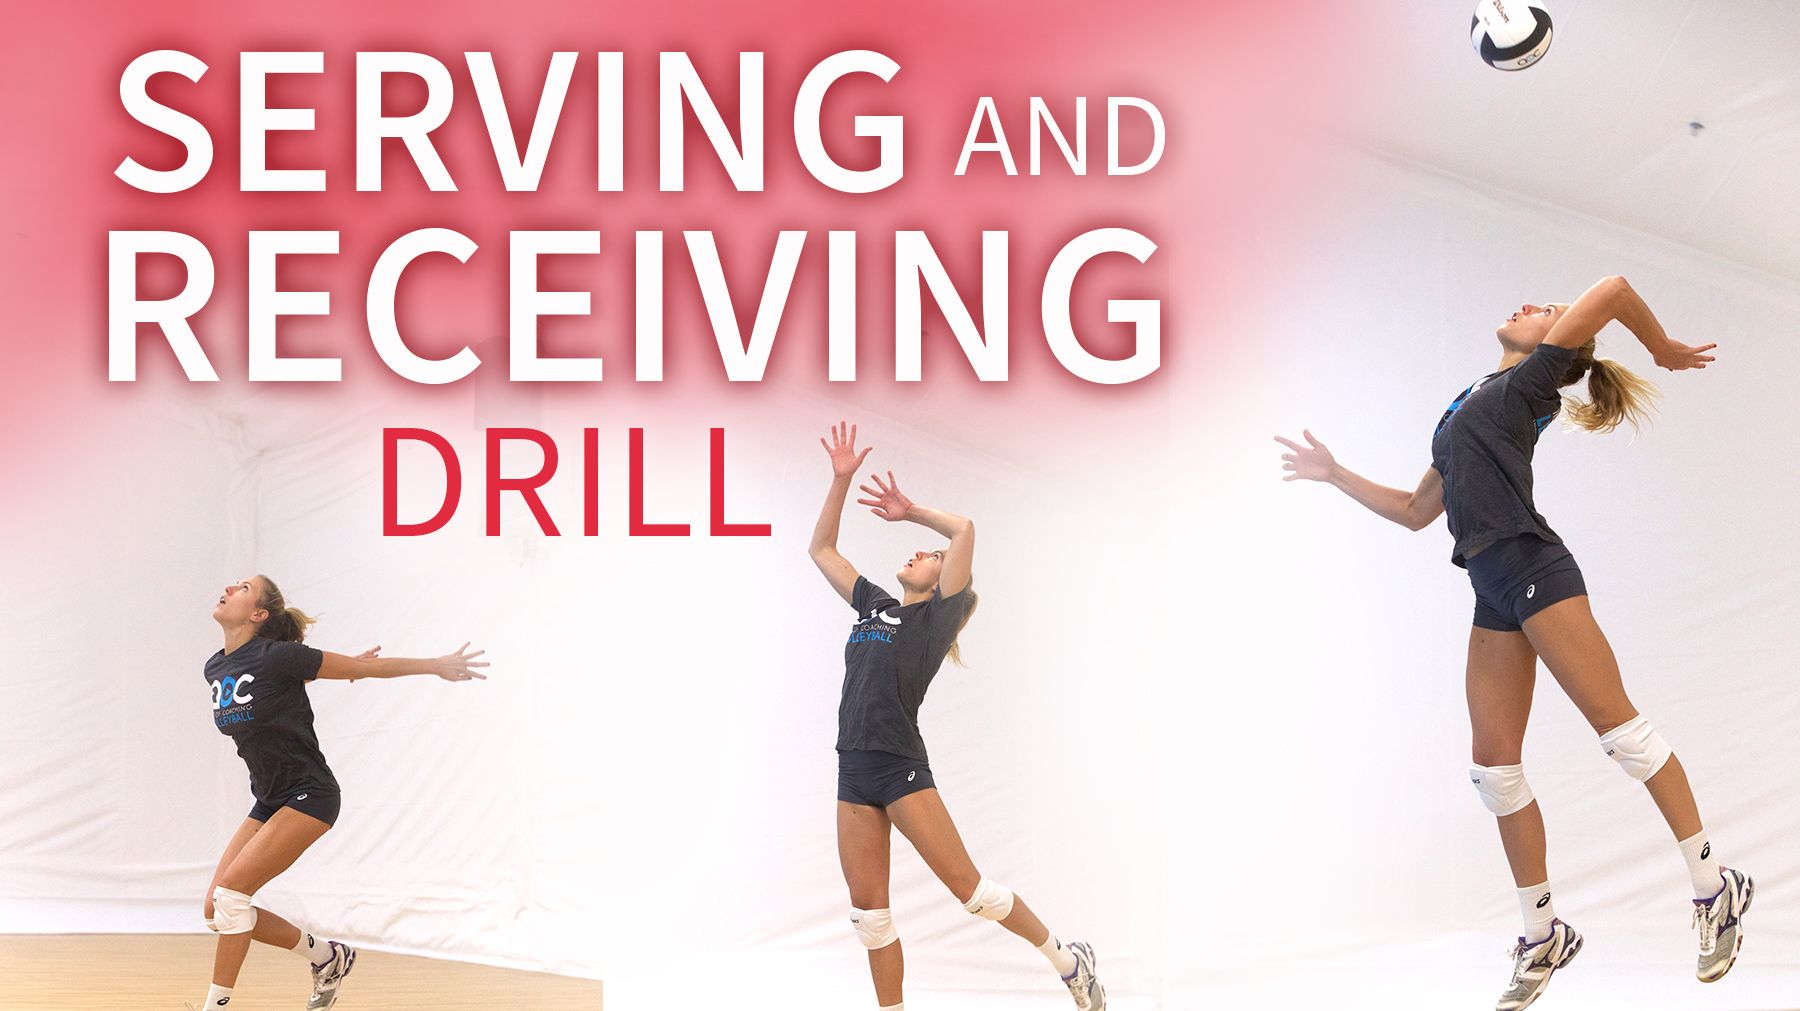 Competitive Serving And Receiving Drill From Sweden Coaching Volleyball Volleyball Drills Volleyball Training